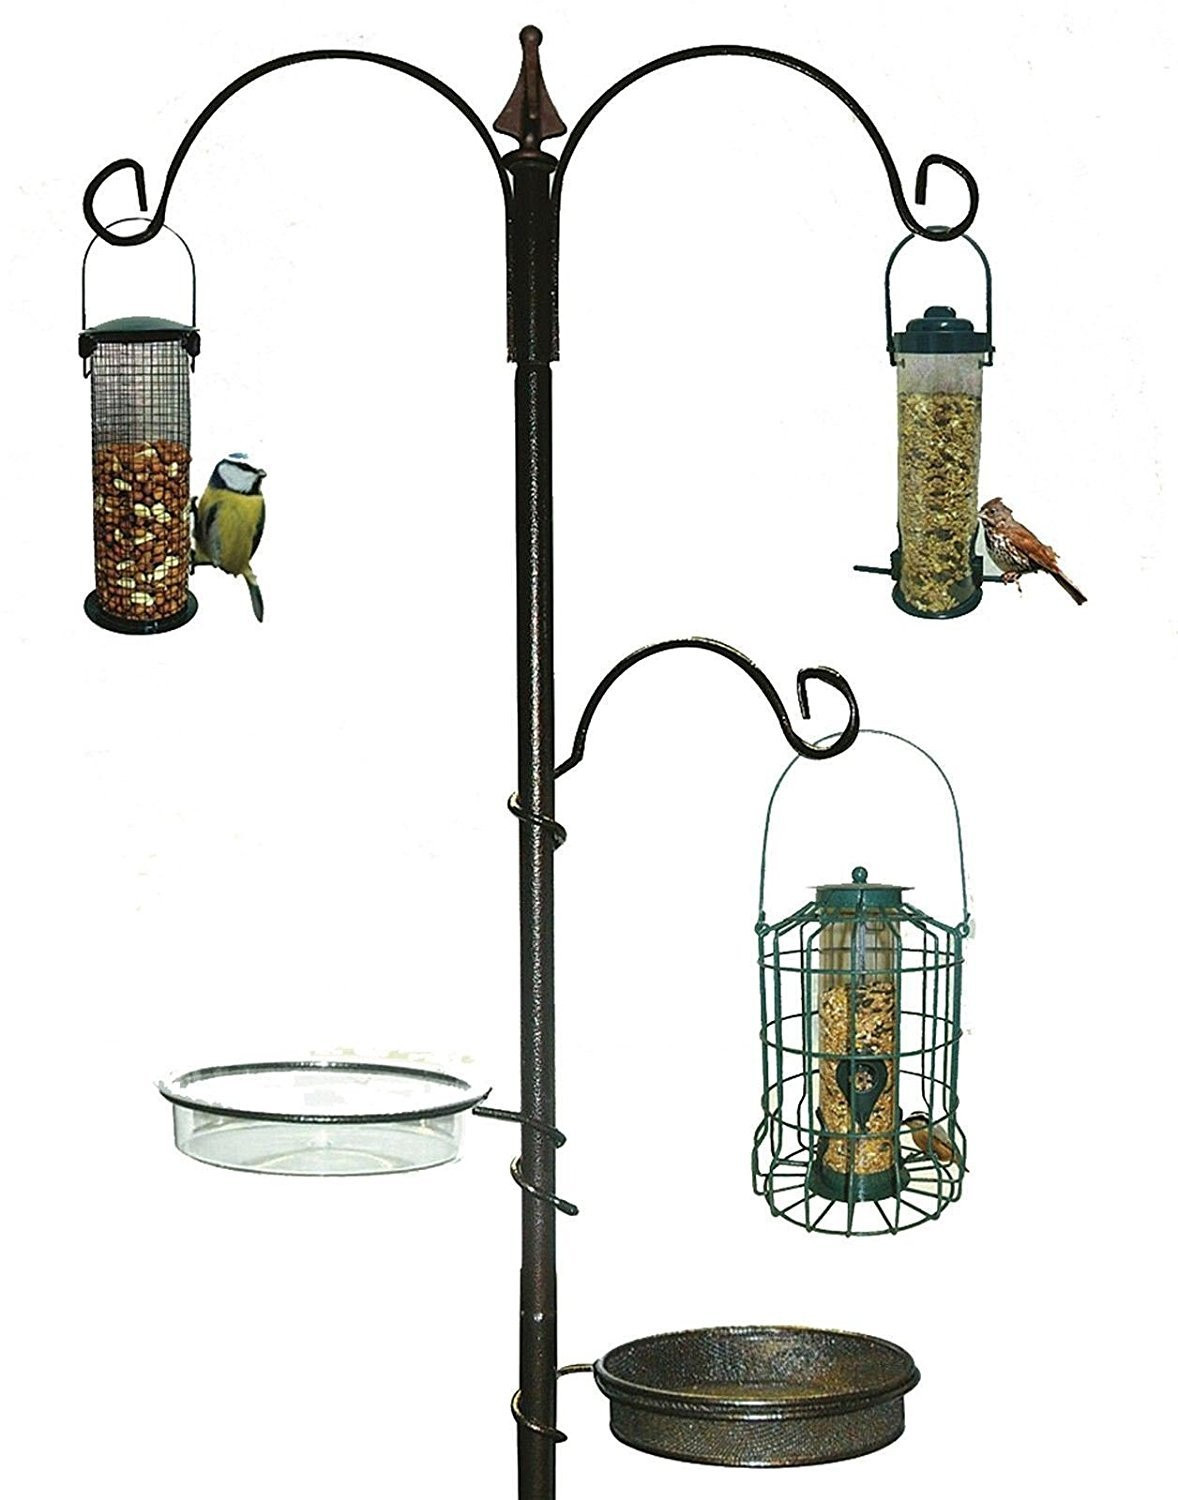 New Traditional Bird Table Feeding Station Hanging Wooden Metal Garden Wild discountin ltd